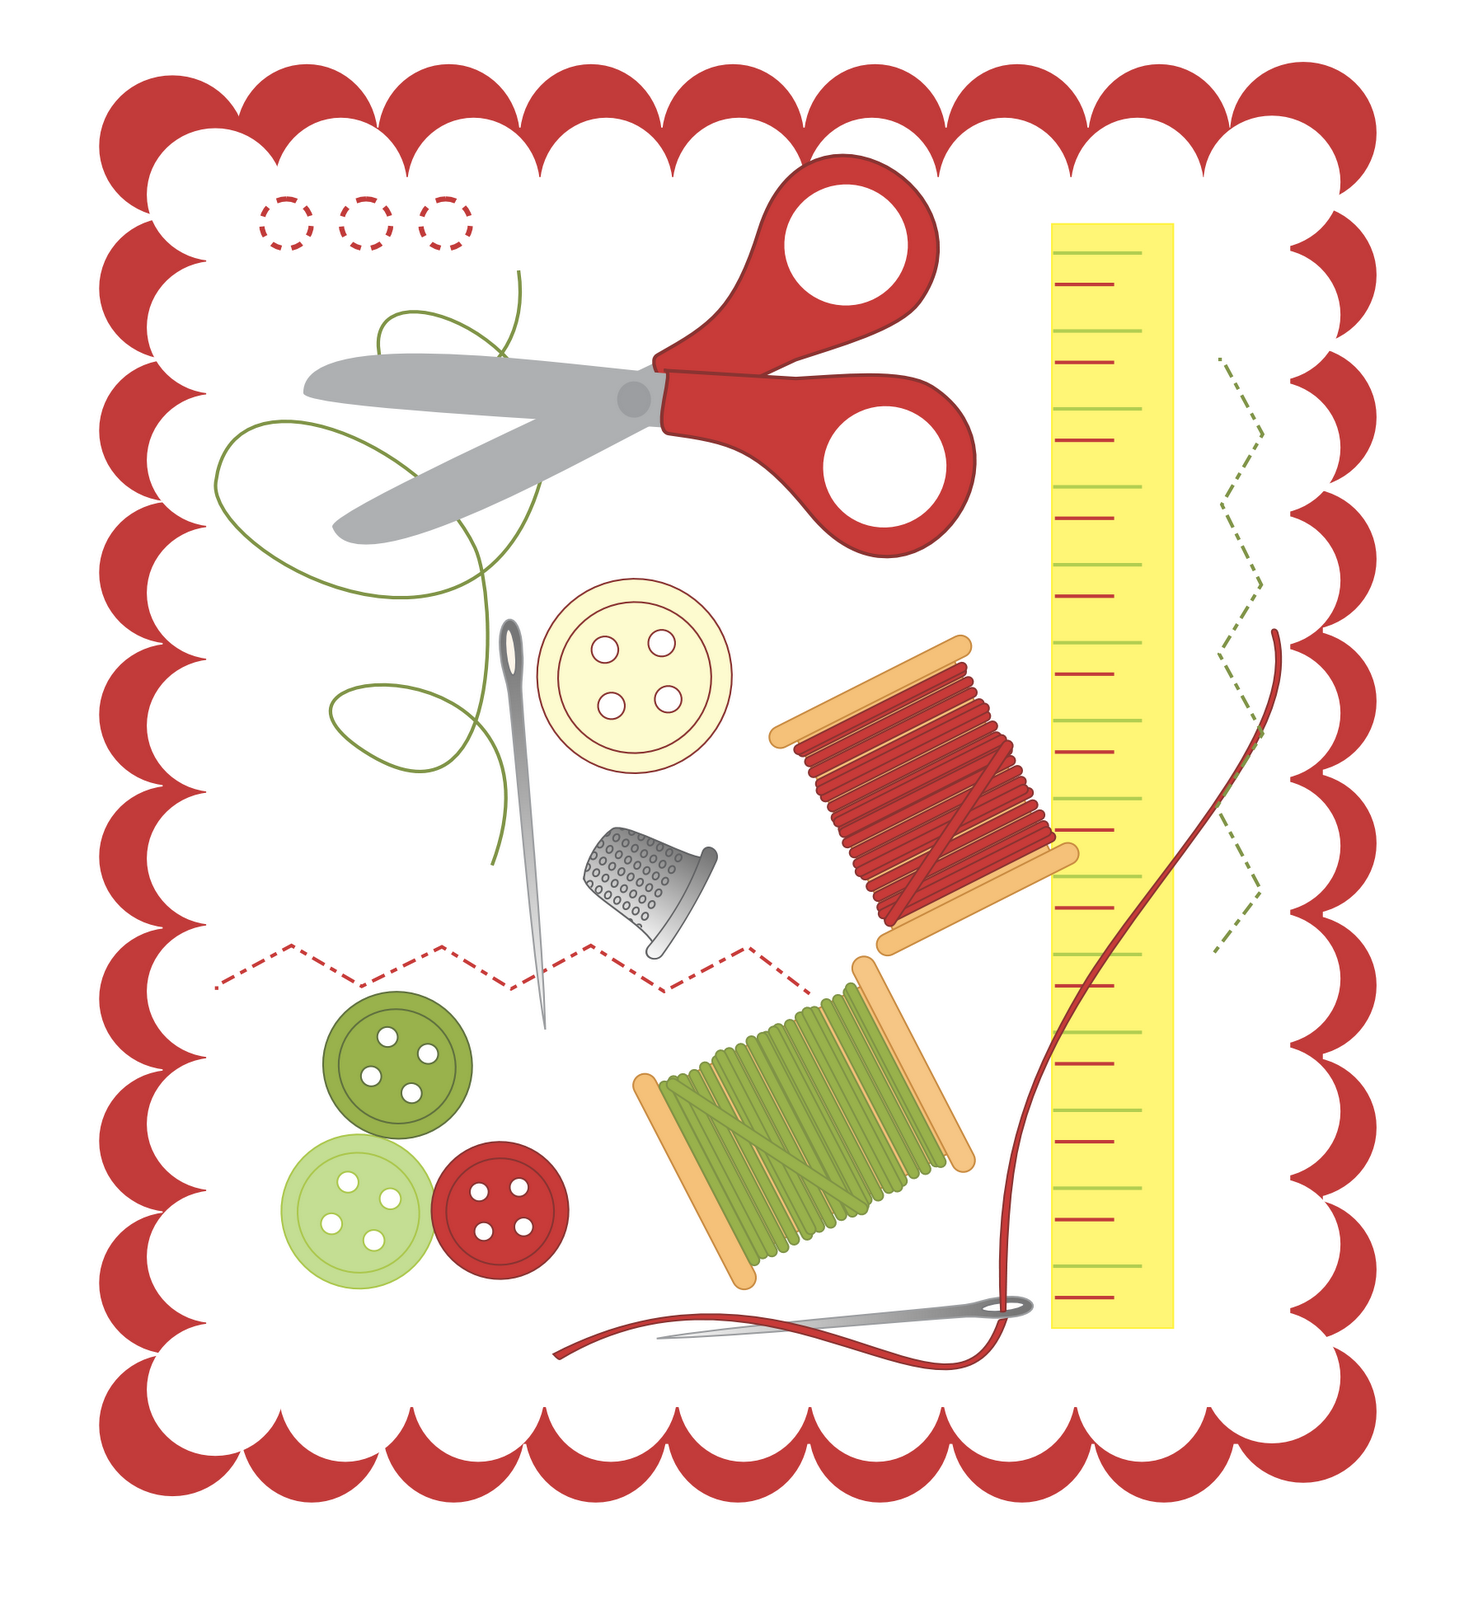 Free PNG Sewing Notions - 84804